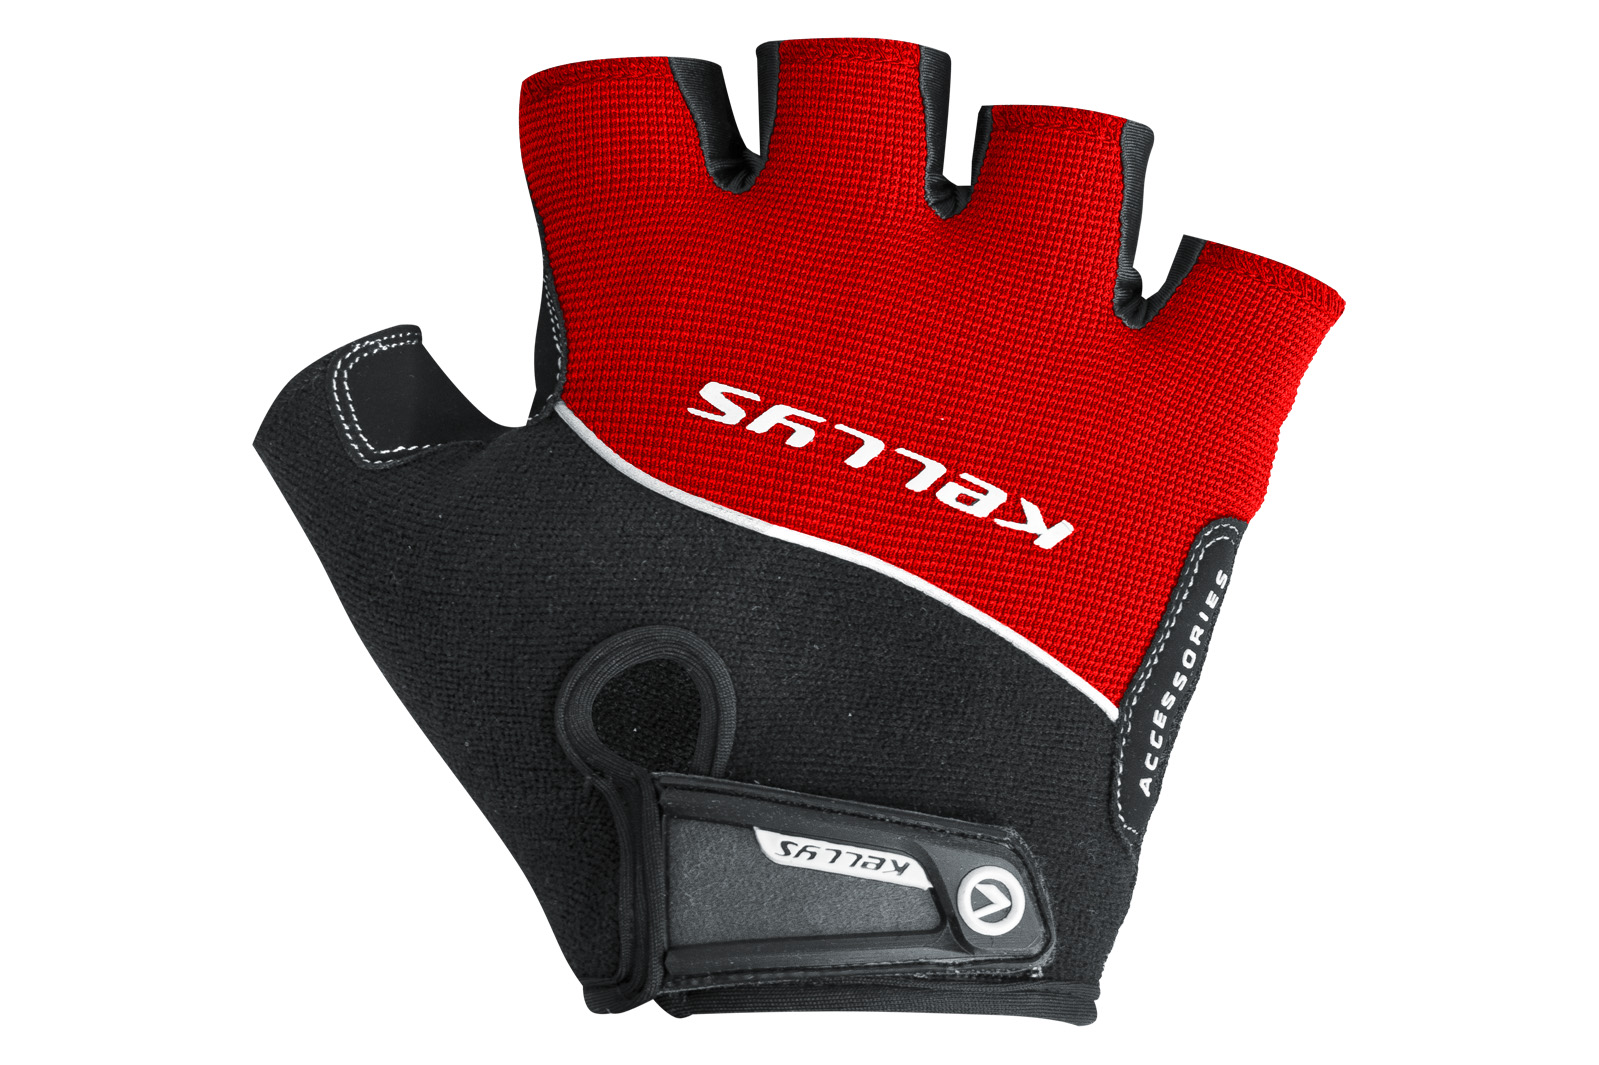 Handschuhe RACE red L NEW - Fahrradhaus Haske